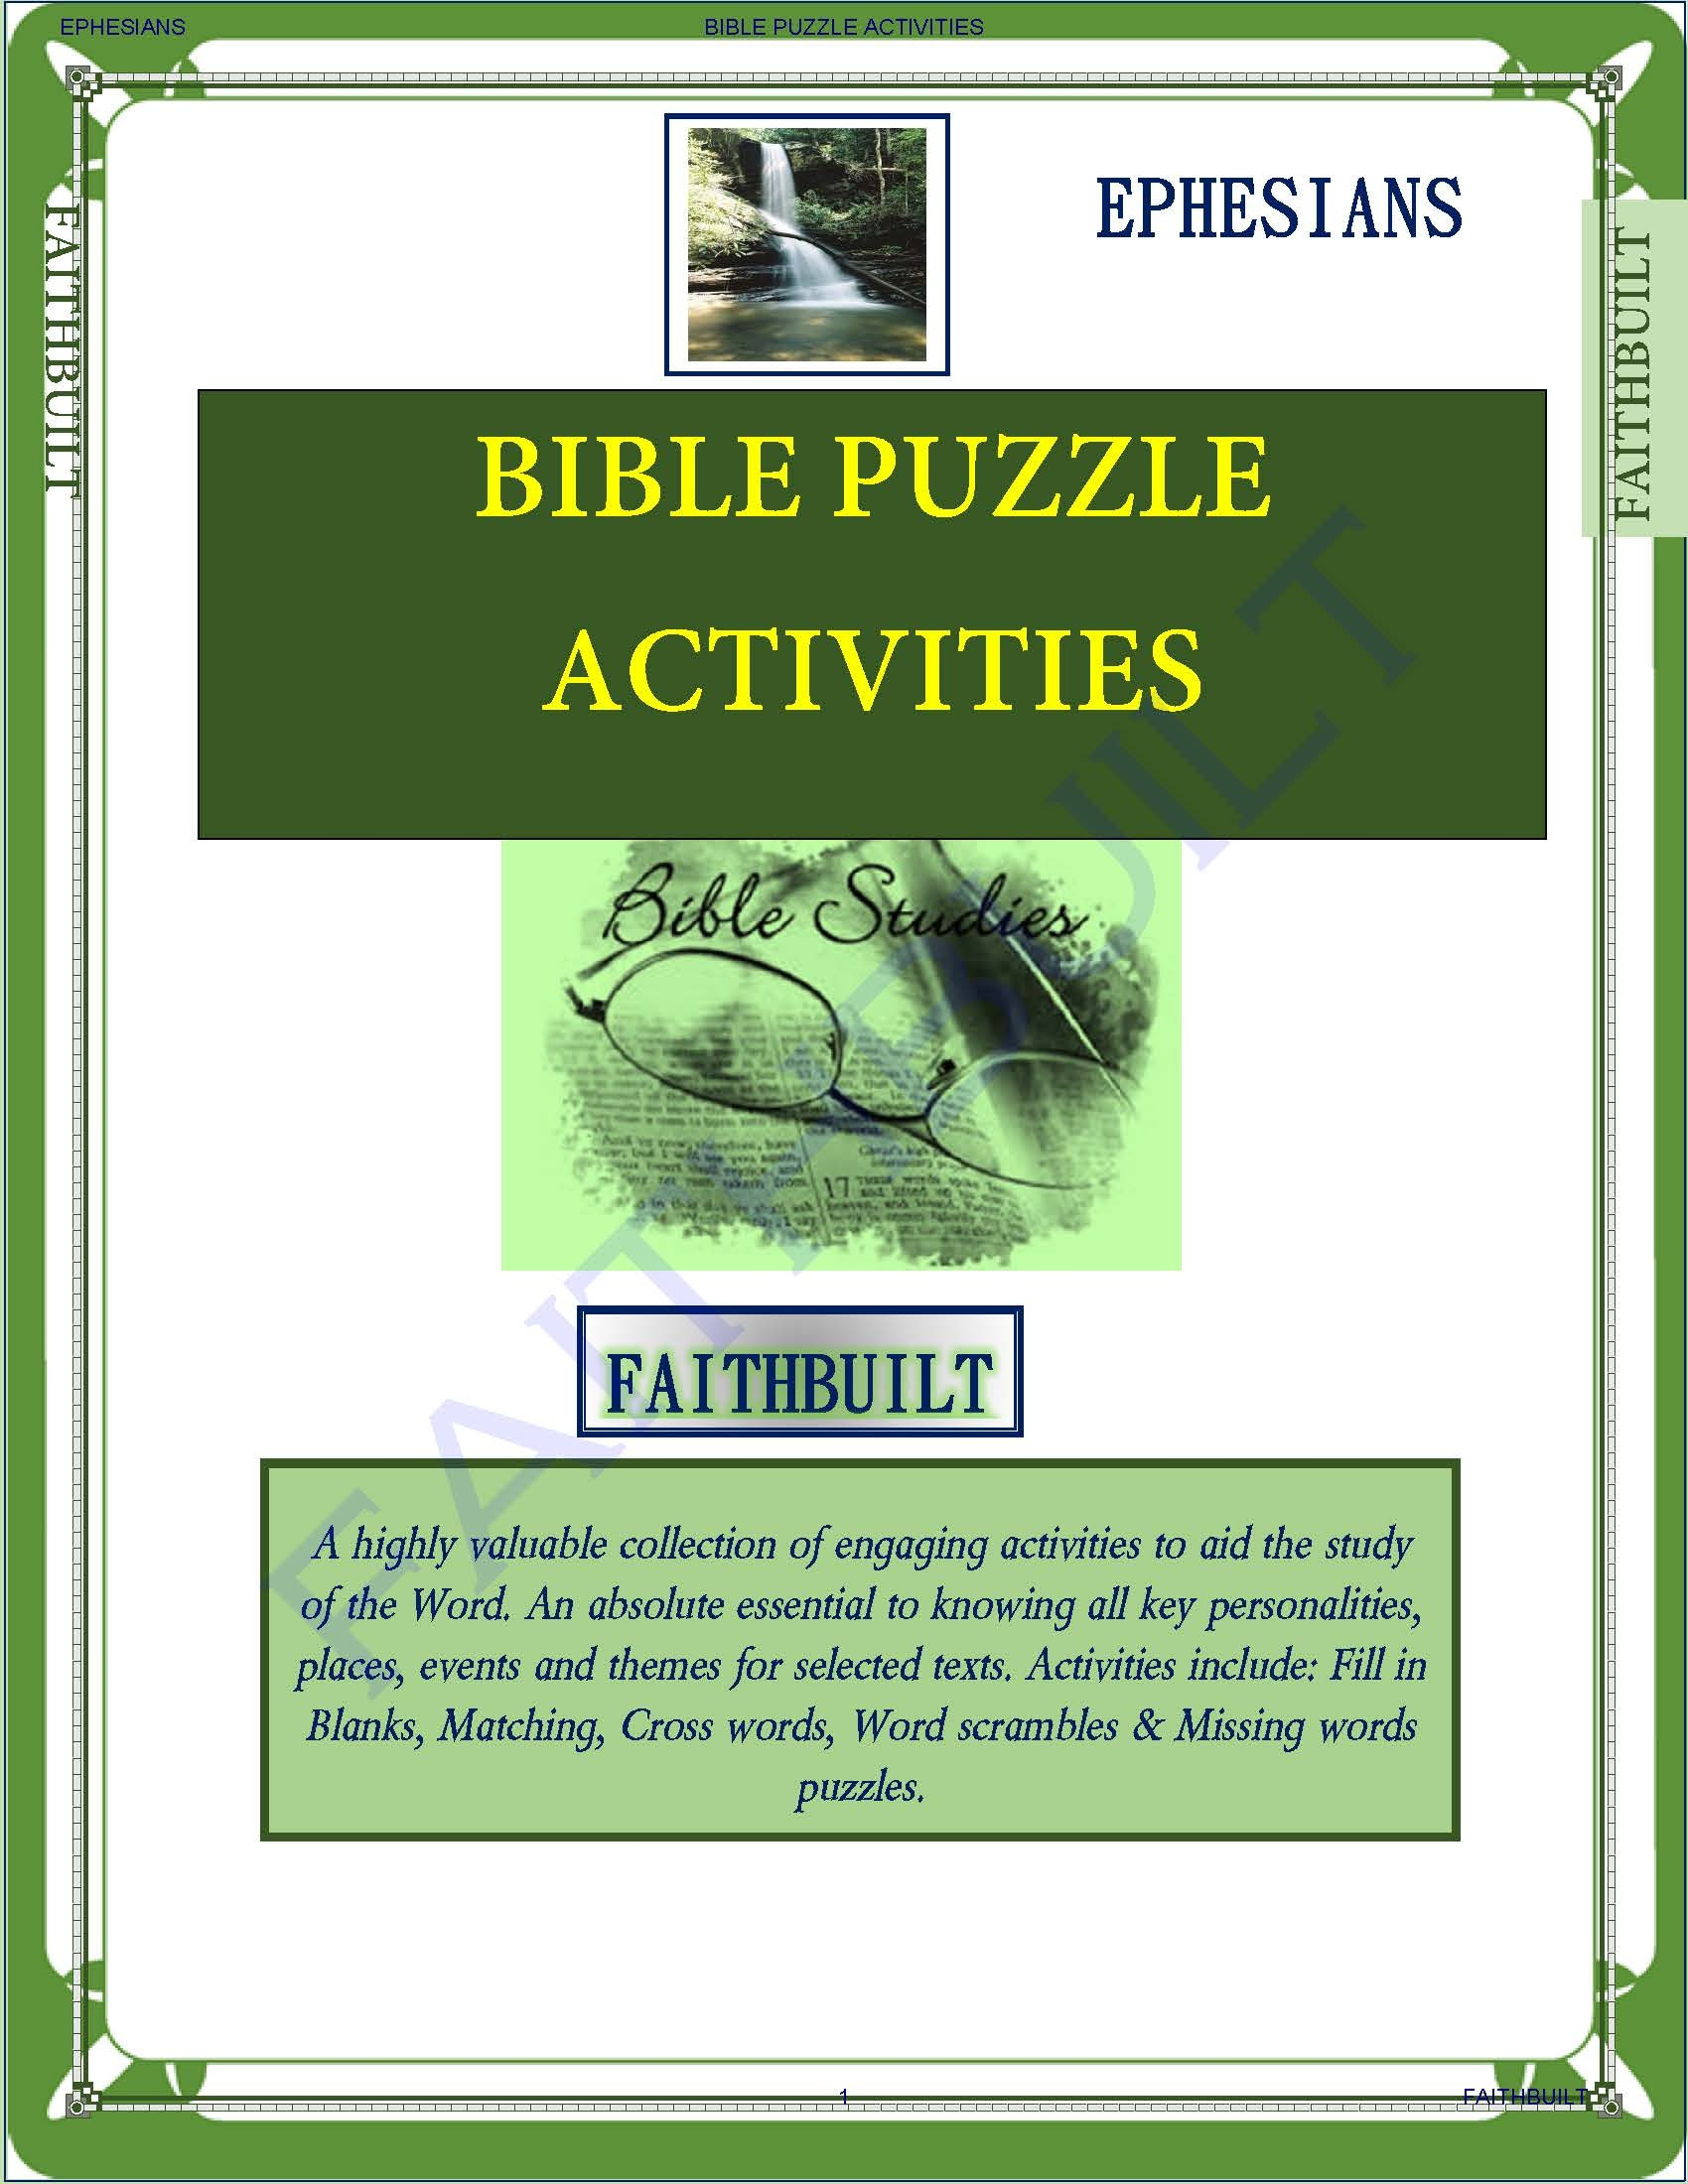 Ephesians - Bible Puzzles and Activities